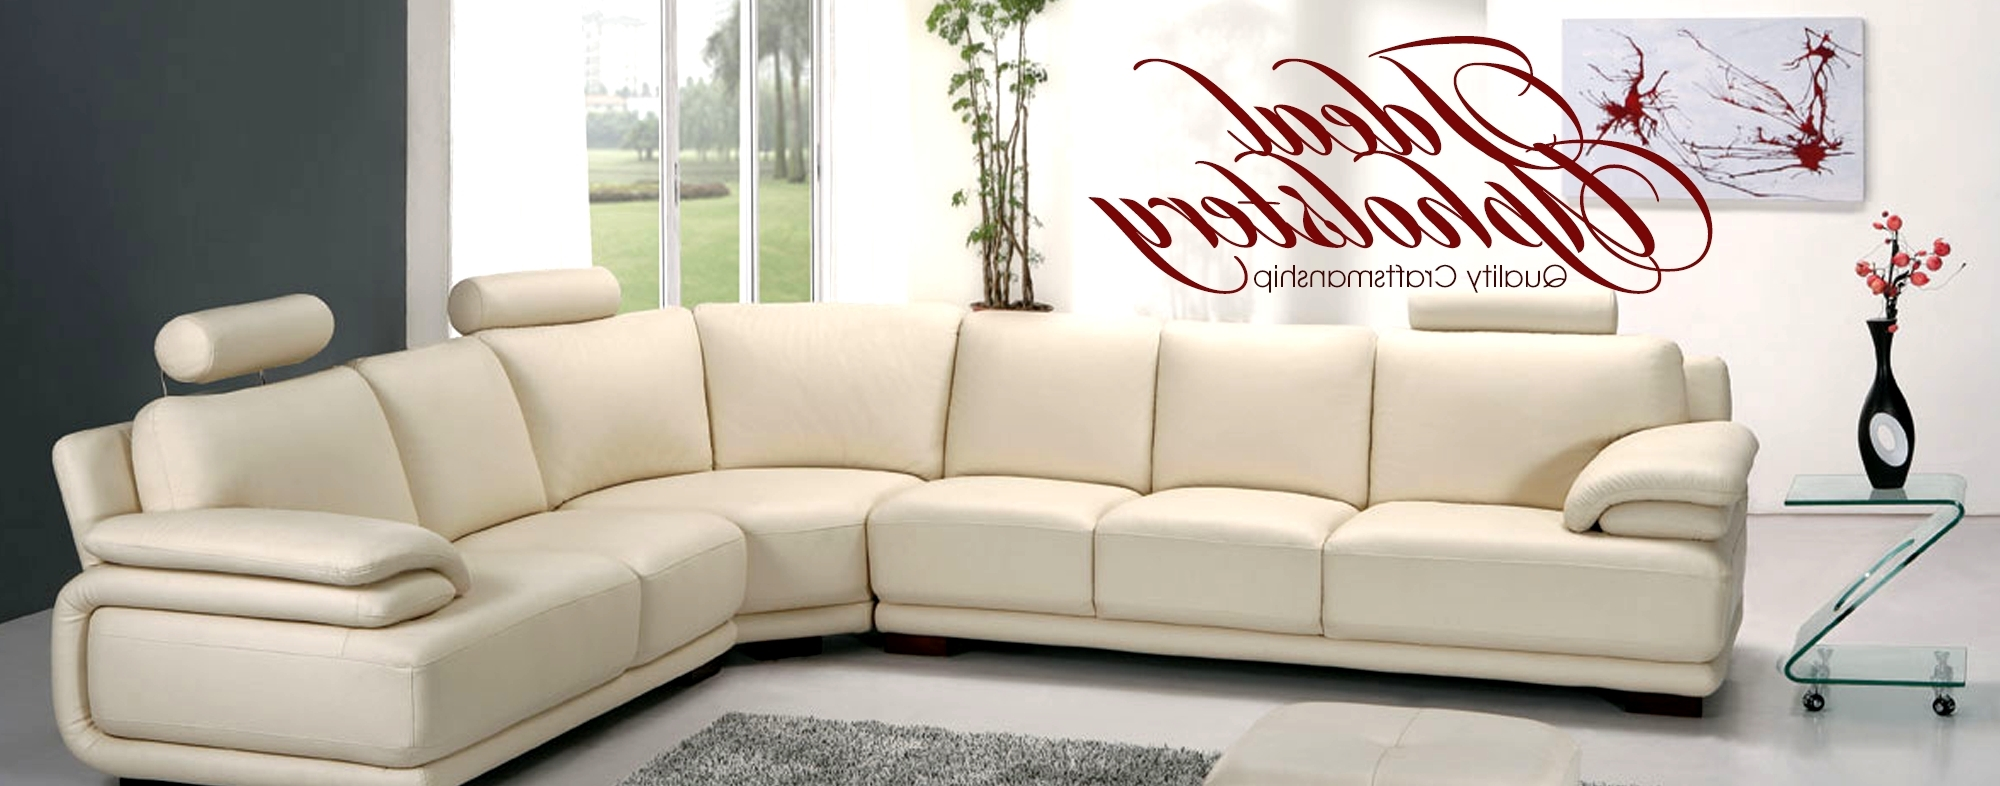 20 Ideas Of Ventura County Sectional Sofas Throughout Ventura County Sectional Sofas (View 5 of 10)